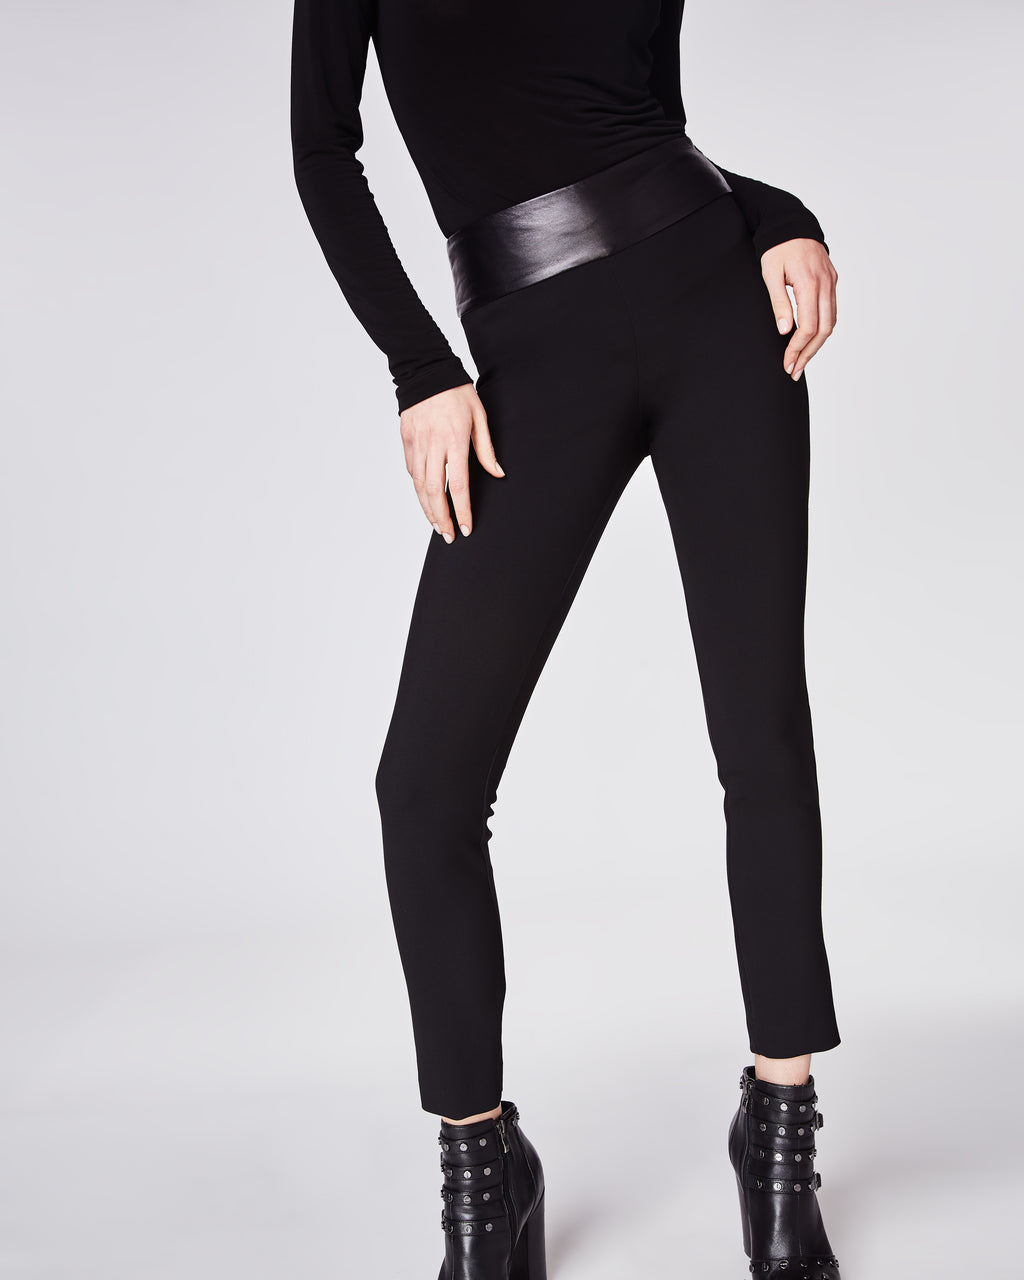 BJ10095 - STRETCHY TECH LEATHER WAISTBAND NINA PANT - bottoms - pants - Our classic skinny Nina Pant is updated with a leather waist band for an elvelated look. Finishedwith a concealed zipper and fully lined